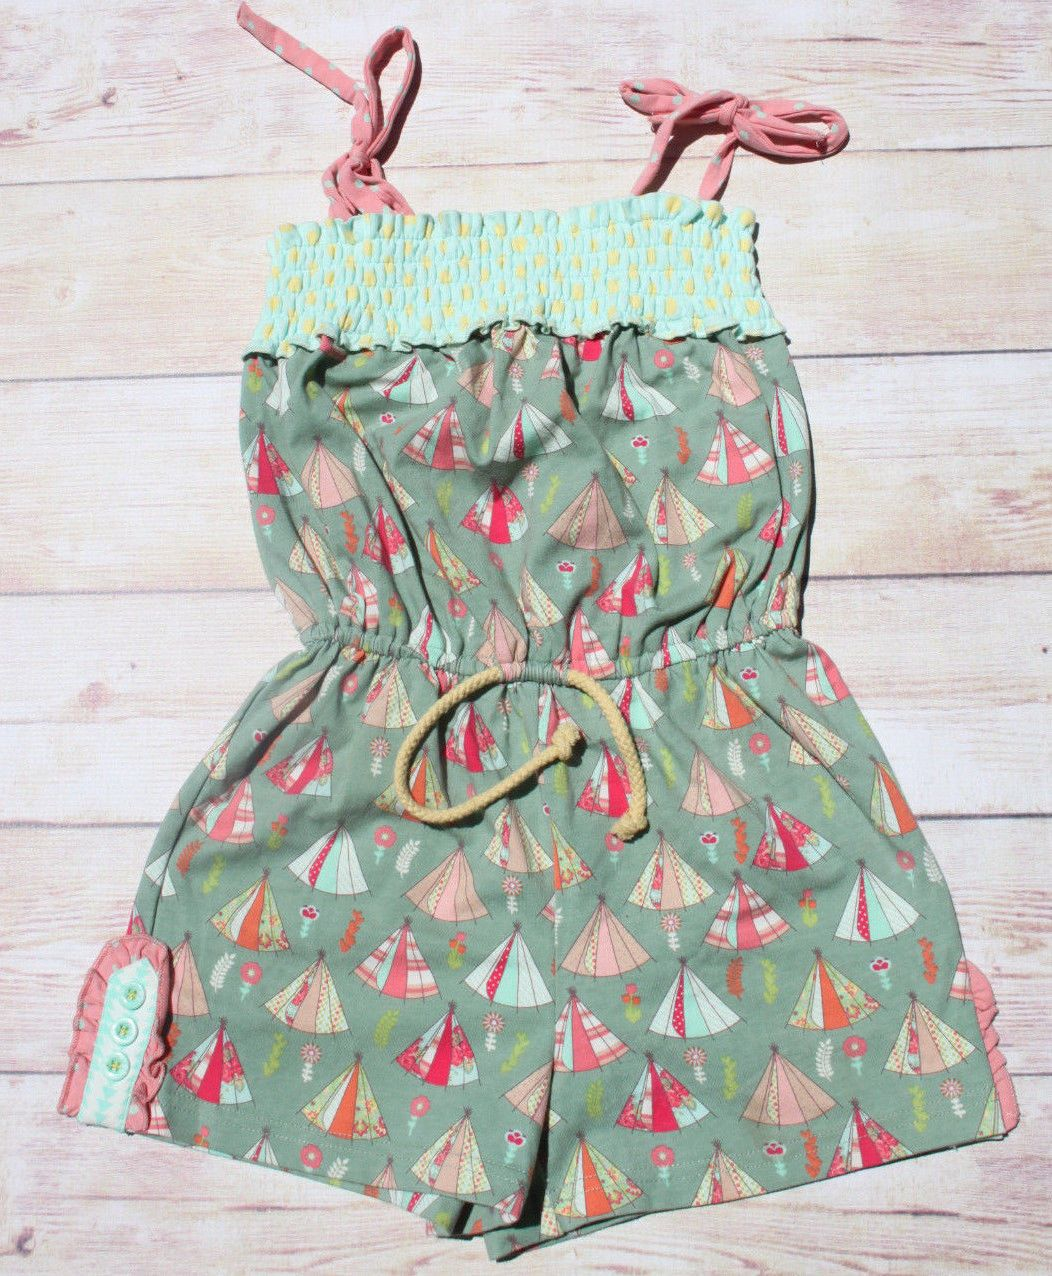 9e5f497b9001 Jumpsuits and Rompers 175528  Matilda Jane Campfire Stories Romper 4 Nwt  Sold Out Happy And Free Tent Teepee 5 -  BUY IT NOW ONLY   39.95 on eBay!